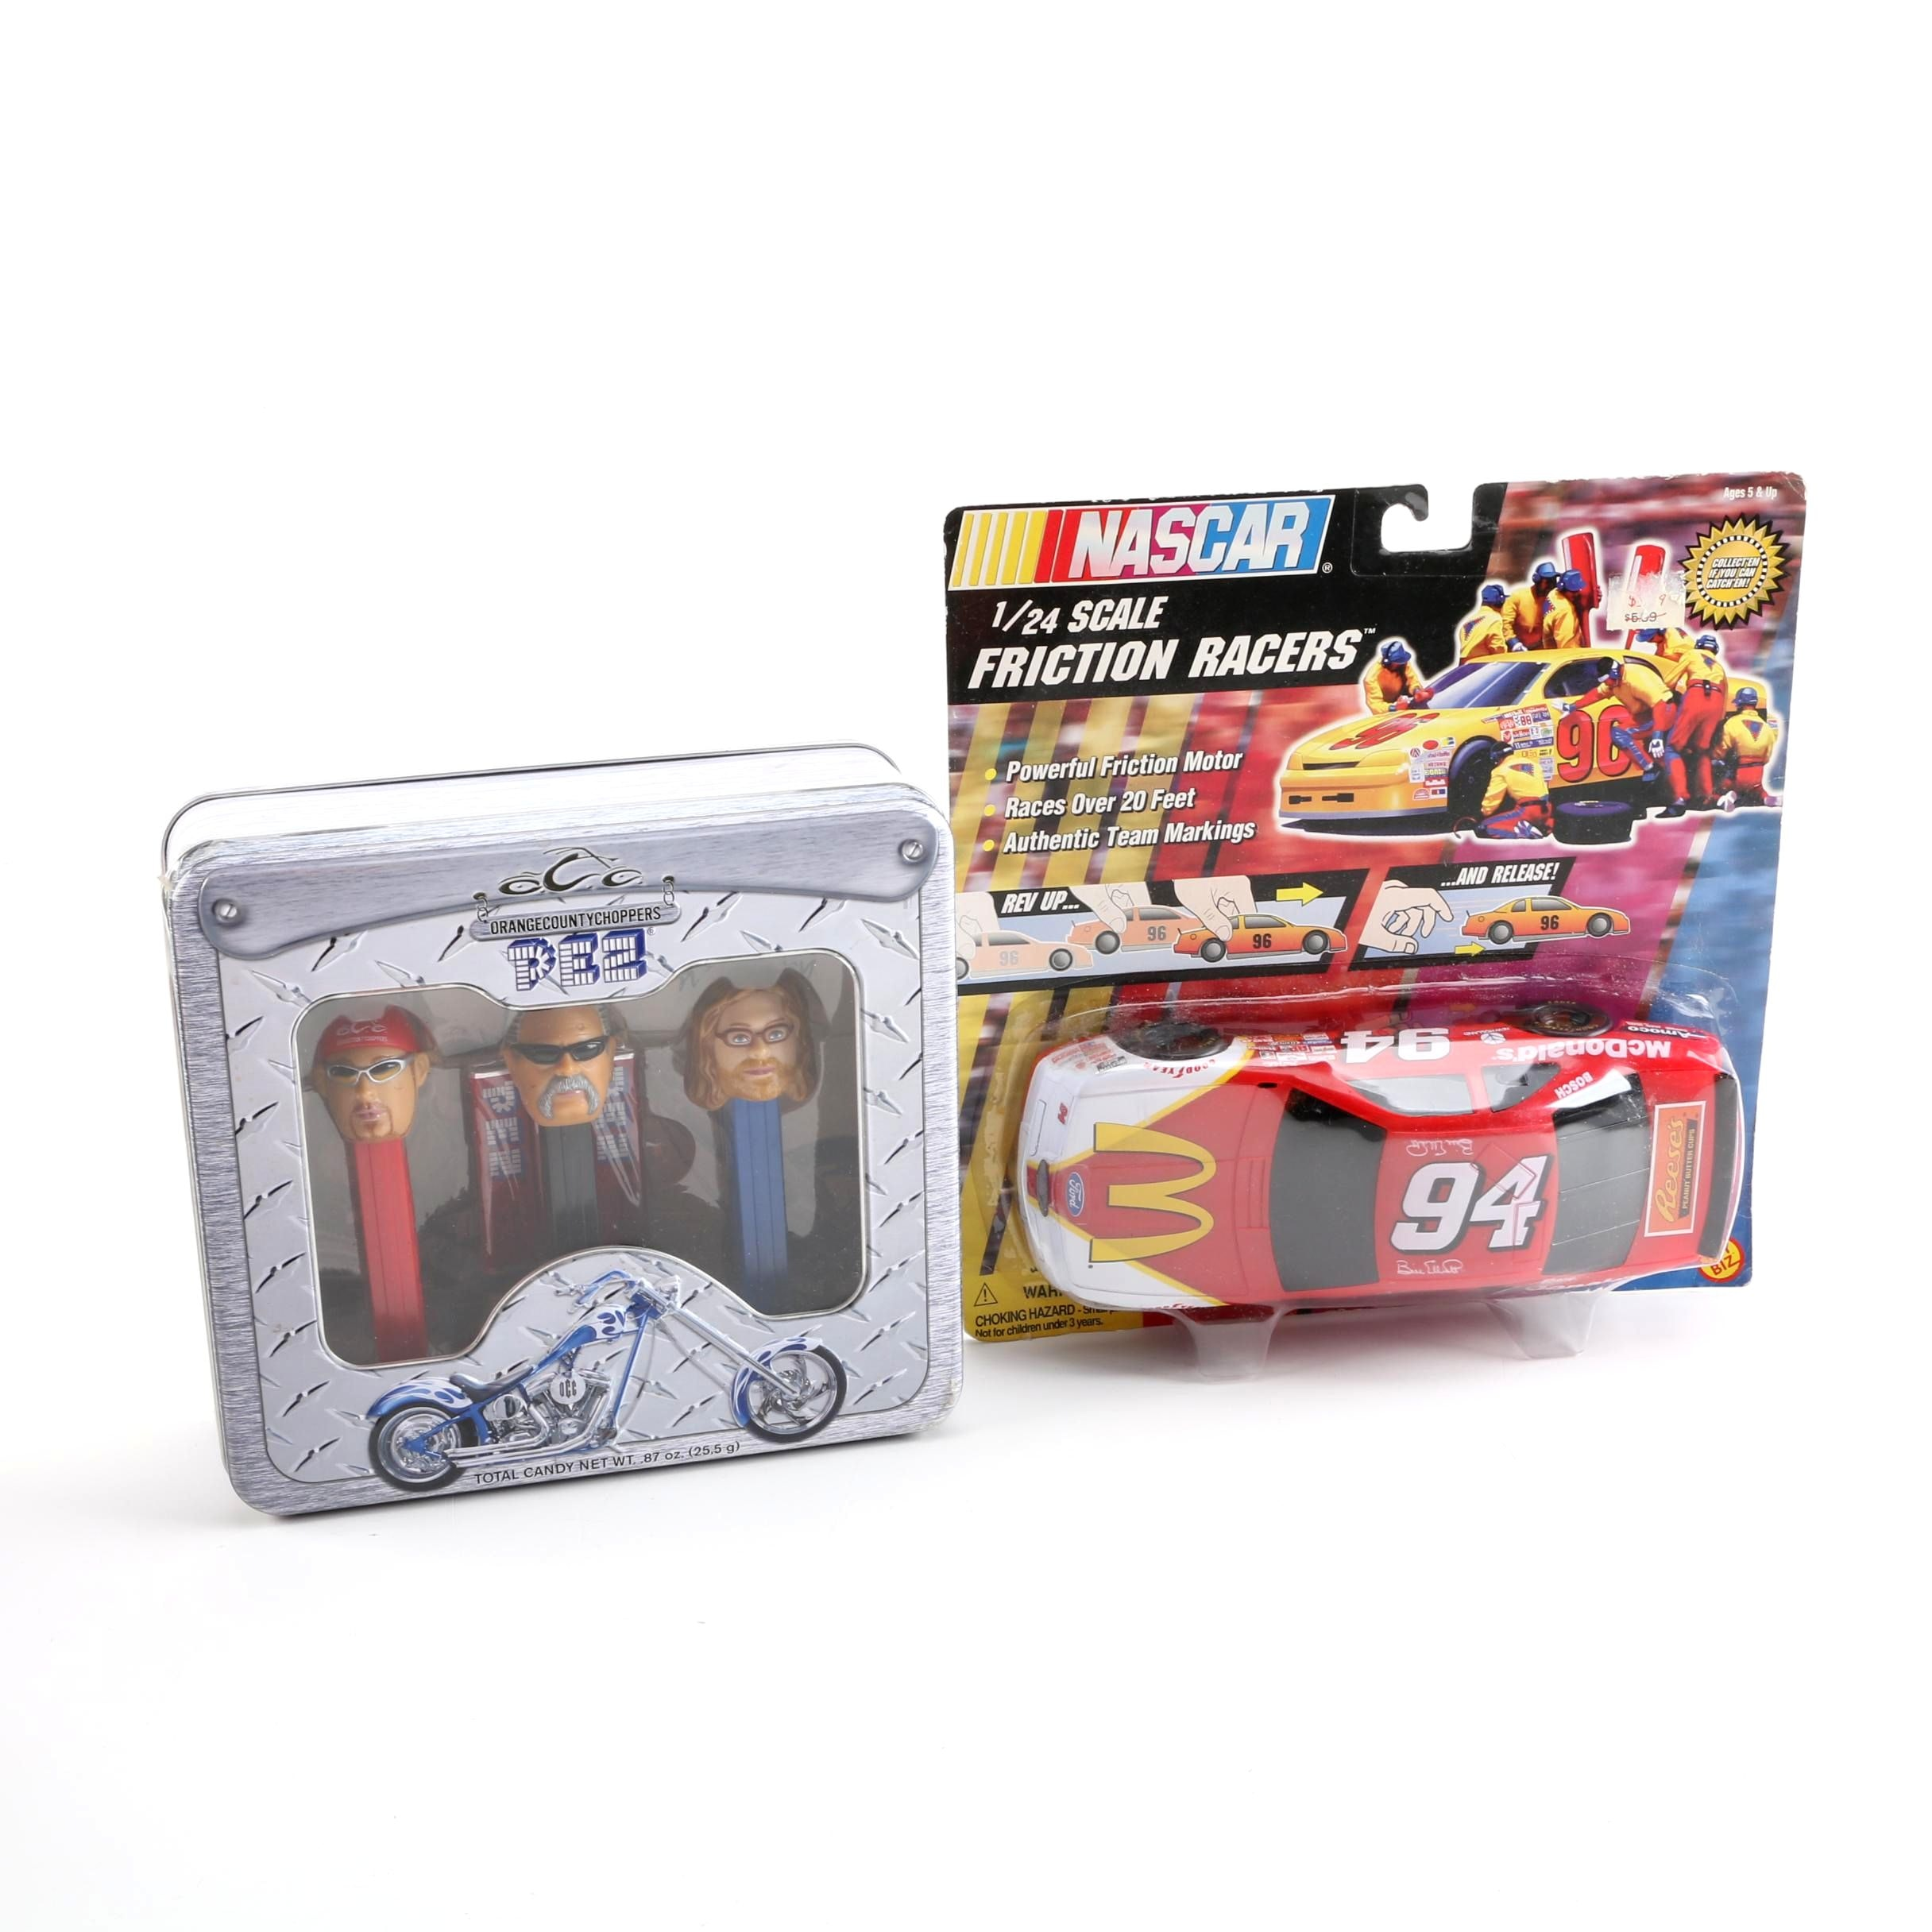 Pez Orange County Coppers Dispensers and NASCAR Friction Racer